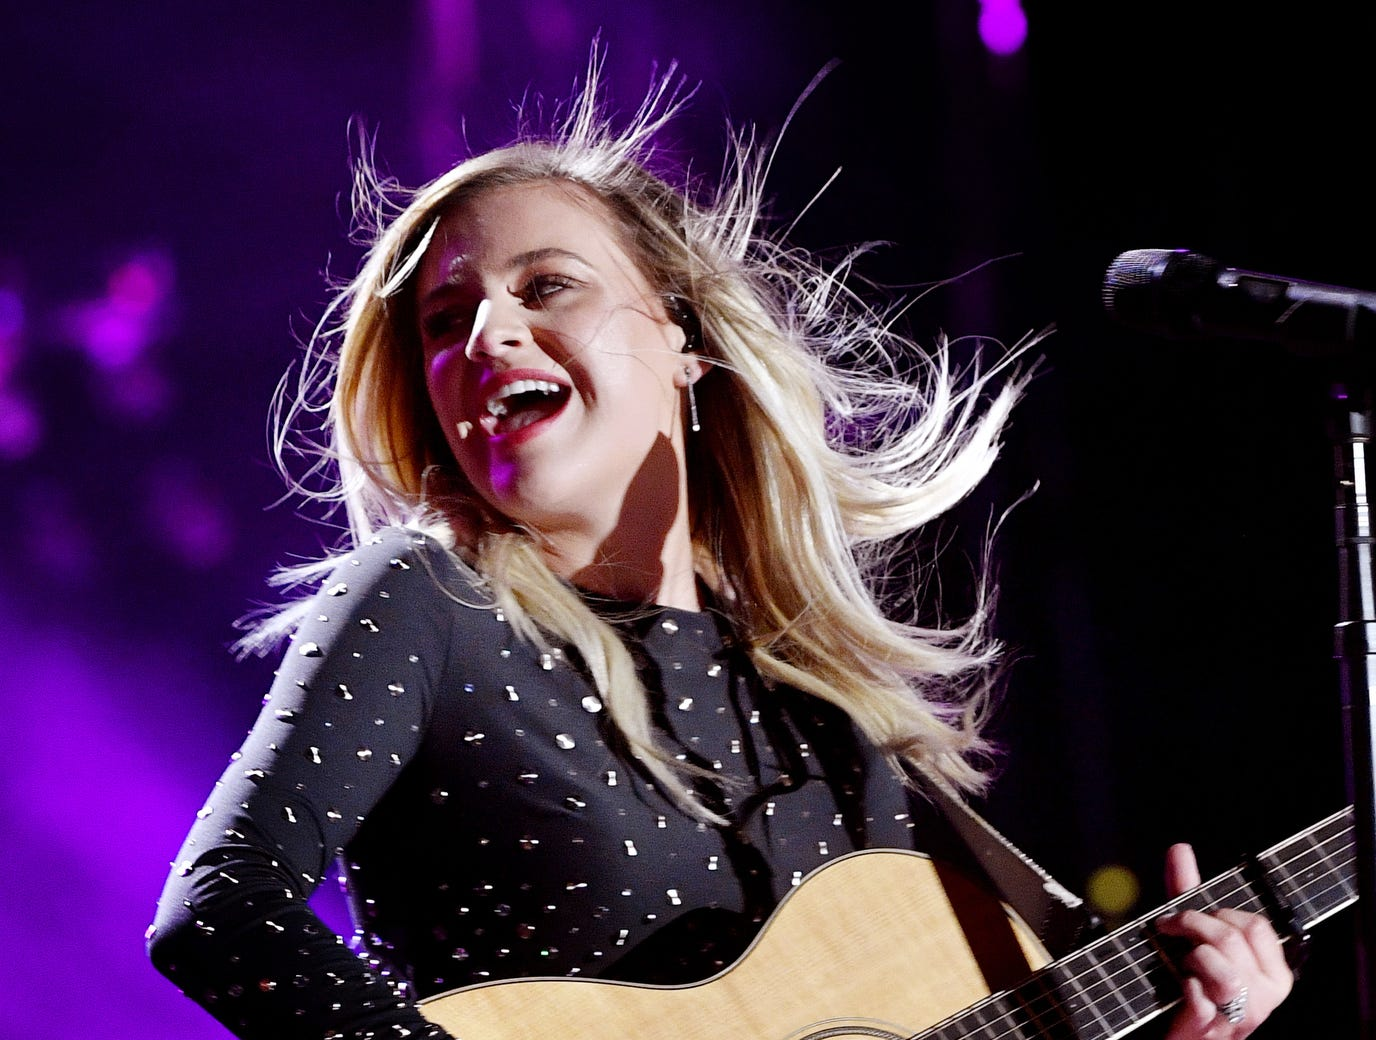 April 16GRAND OLE OPRY WITH KELSEA BALLERINI, MORE: 7 p.m. Grand Ole Opry House, $40-$110, opry.com